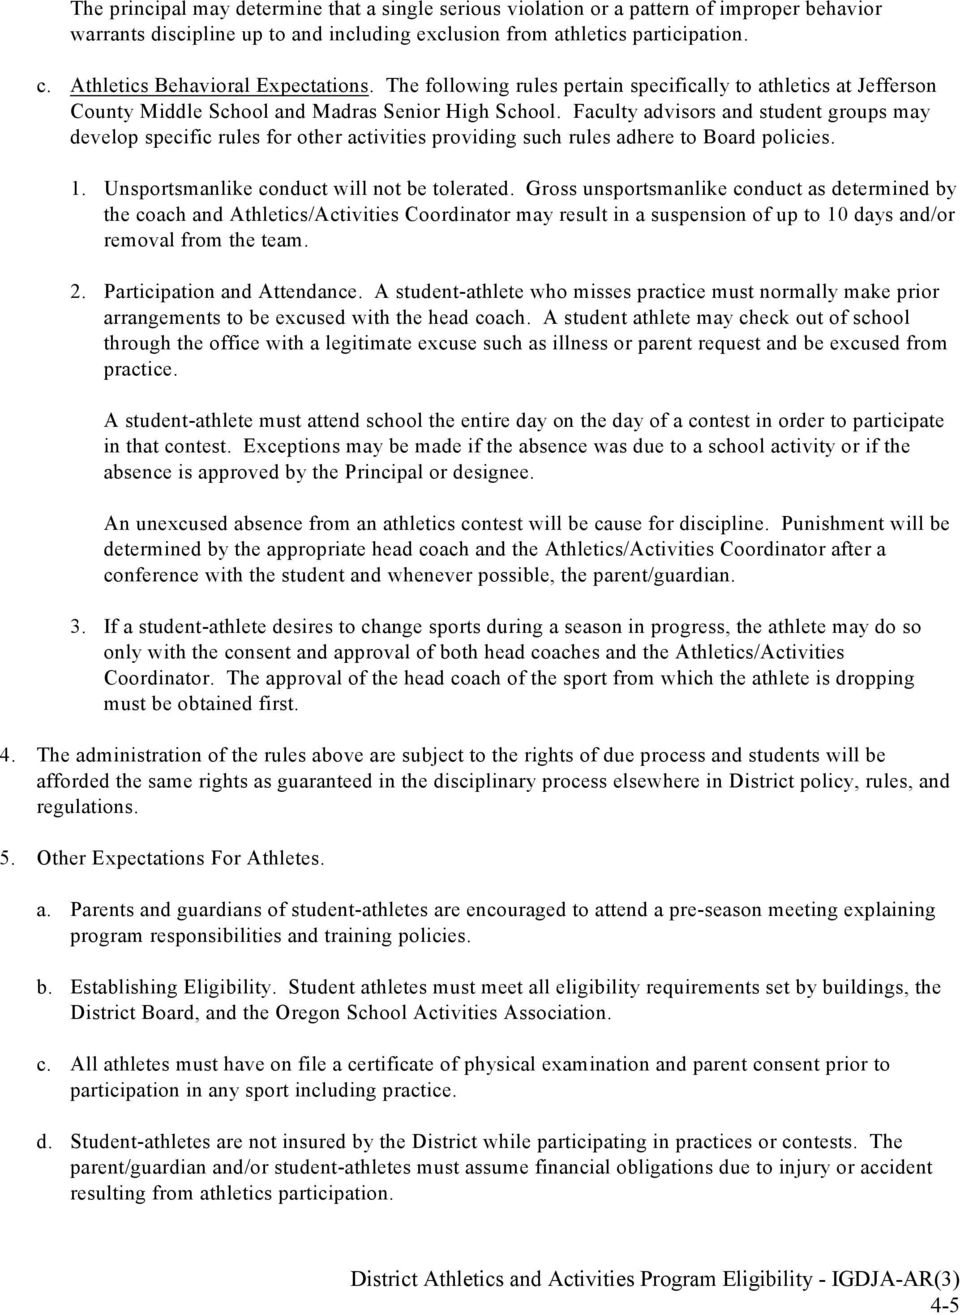 Faculty advisors and student groups may develop specific rules for other activities providing such rules adhere to Board policies. 1. Unsportsmanlike conduct will not be tolerated.